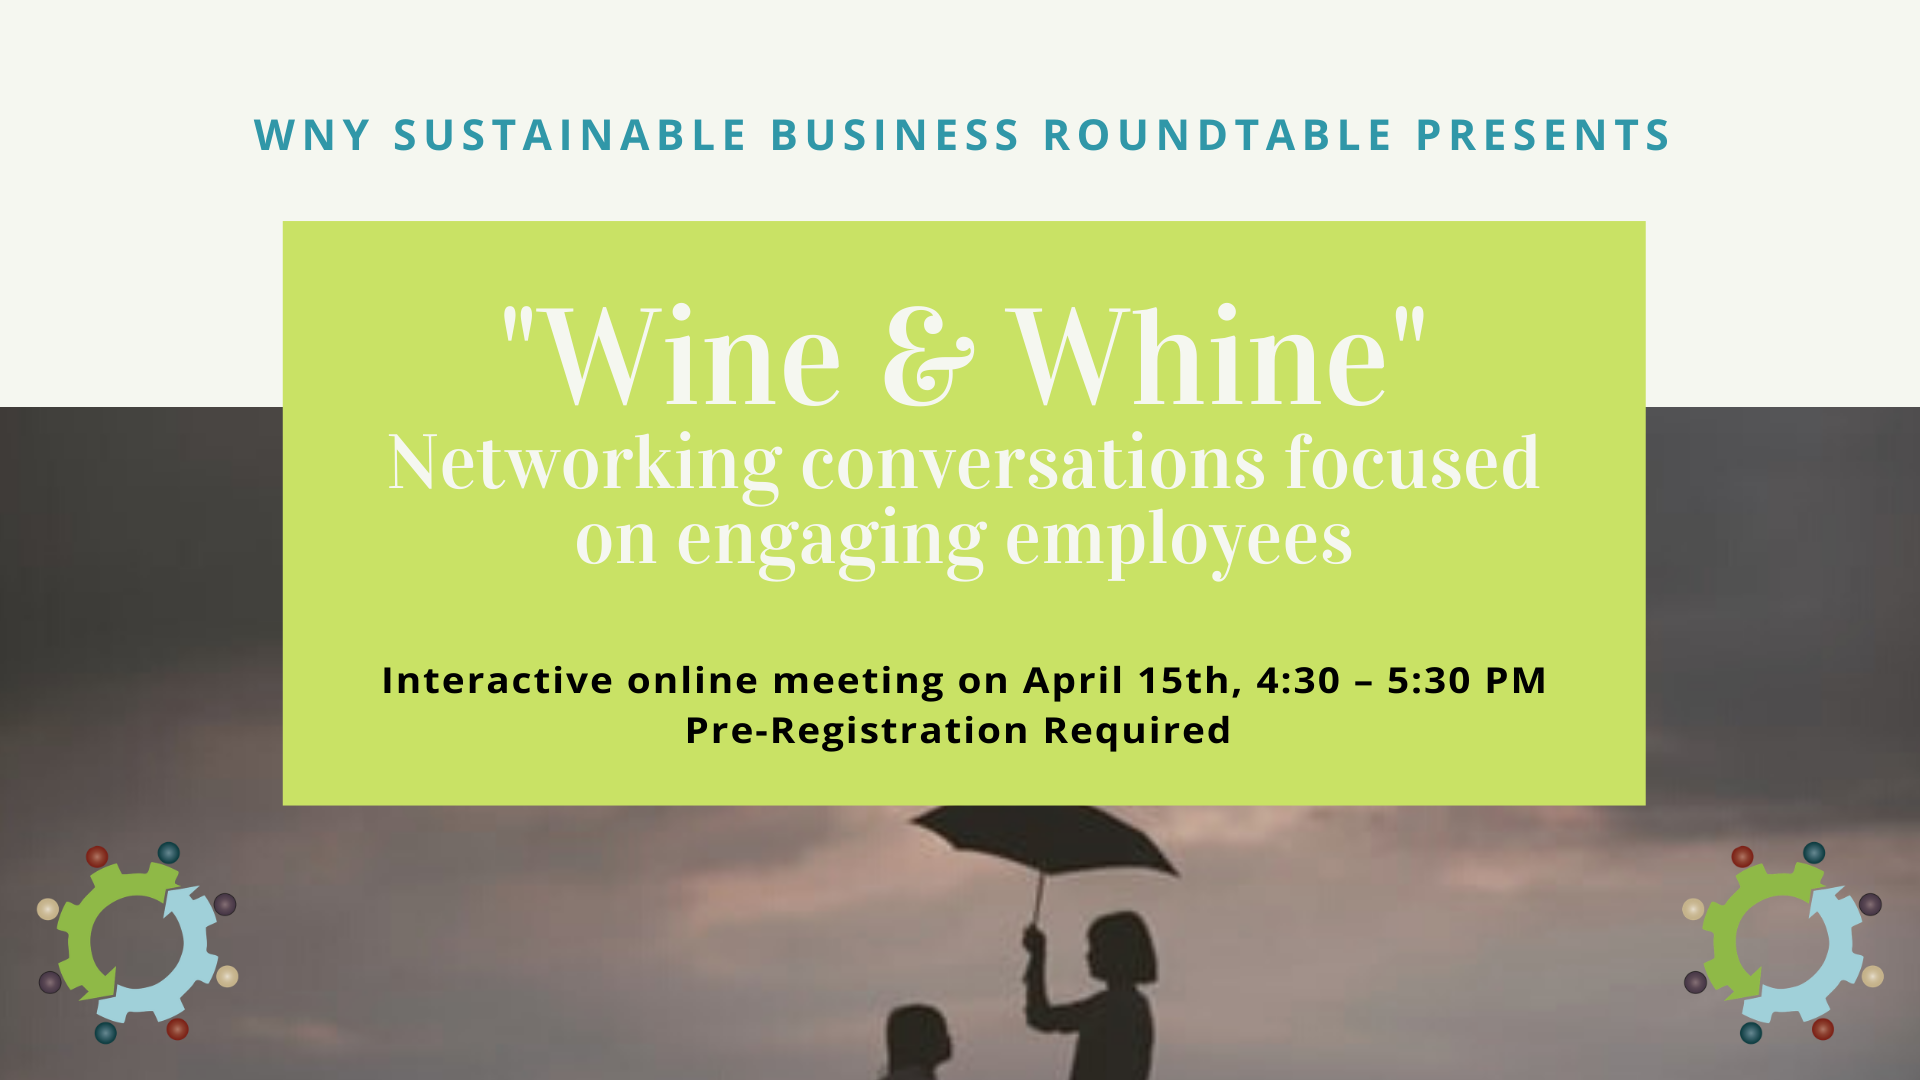 """Wine & Whine - networking conversations focused on engaging employees"""